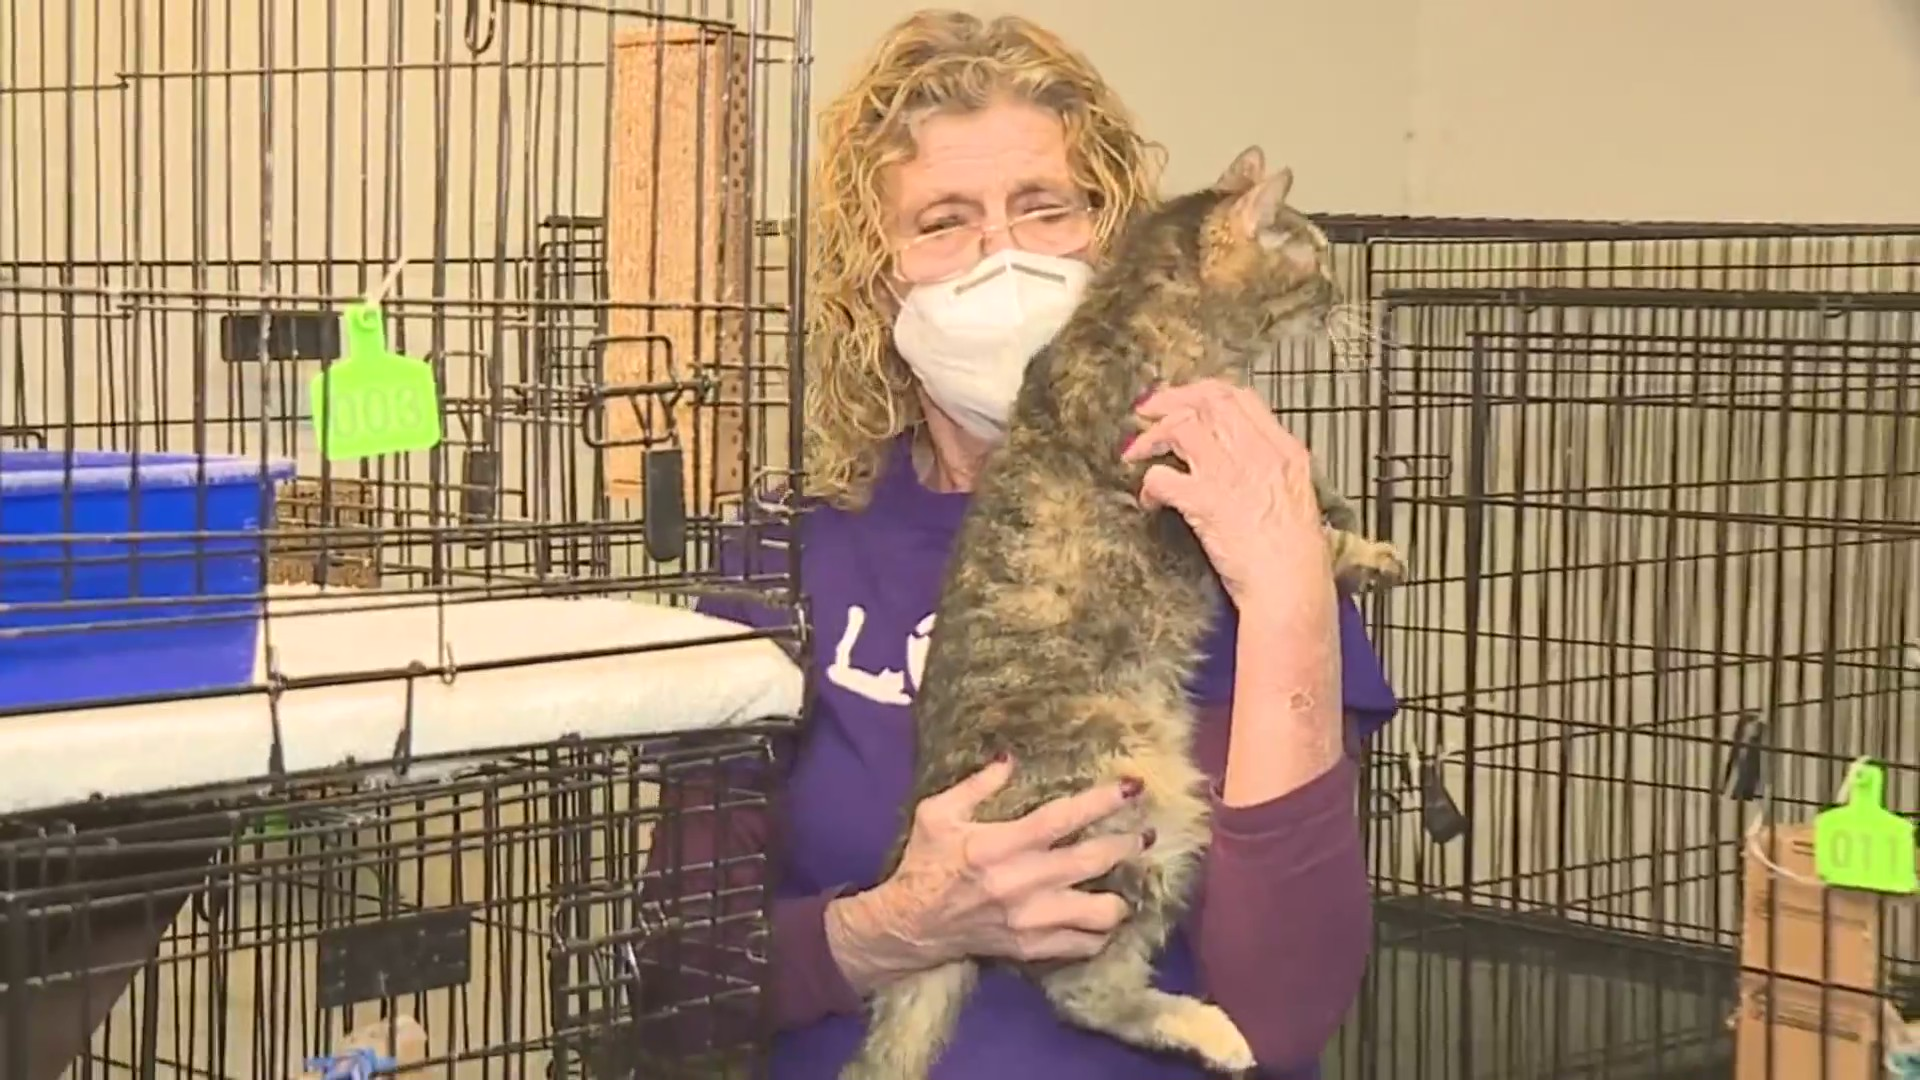 Picture of woman holding rescued cat near cages